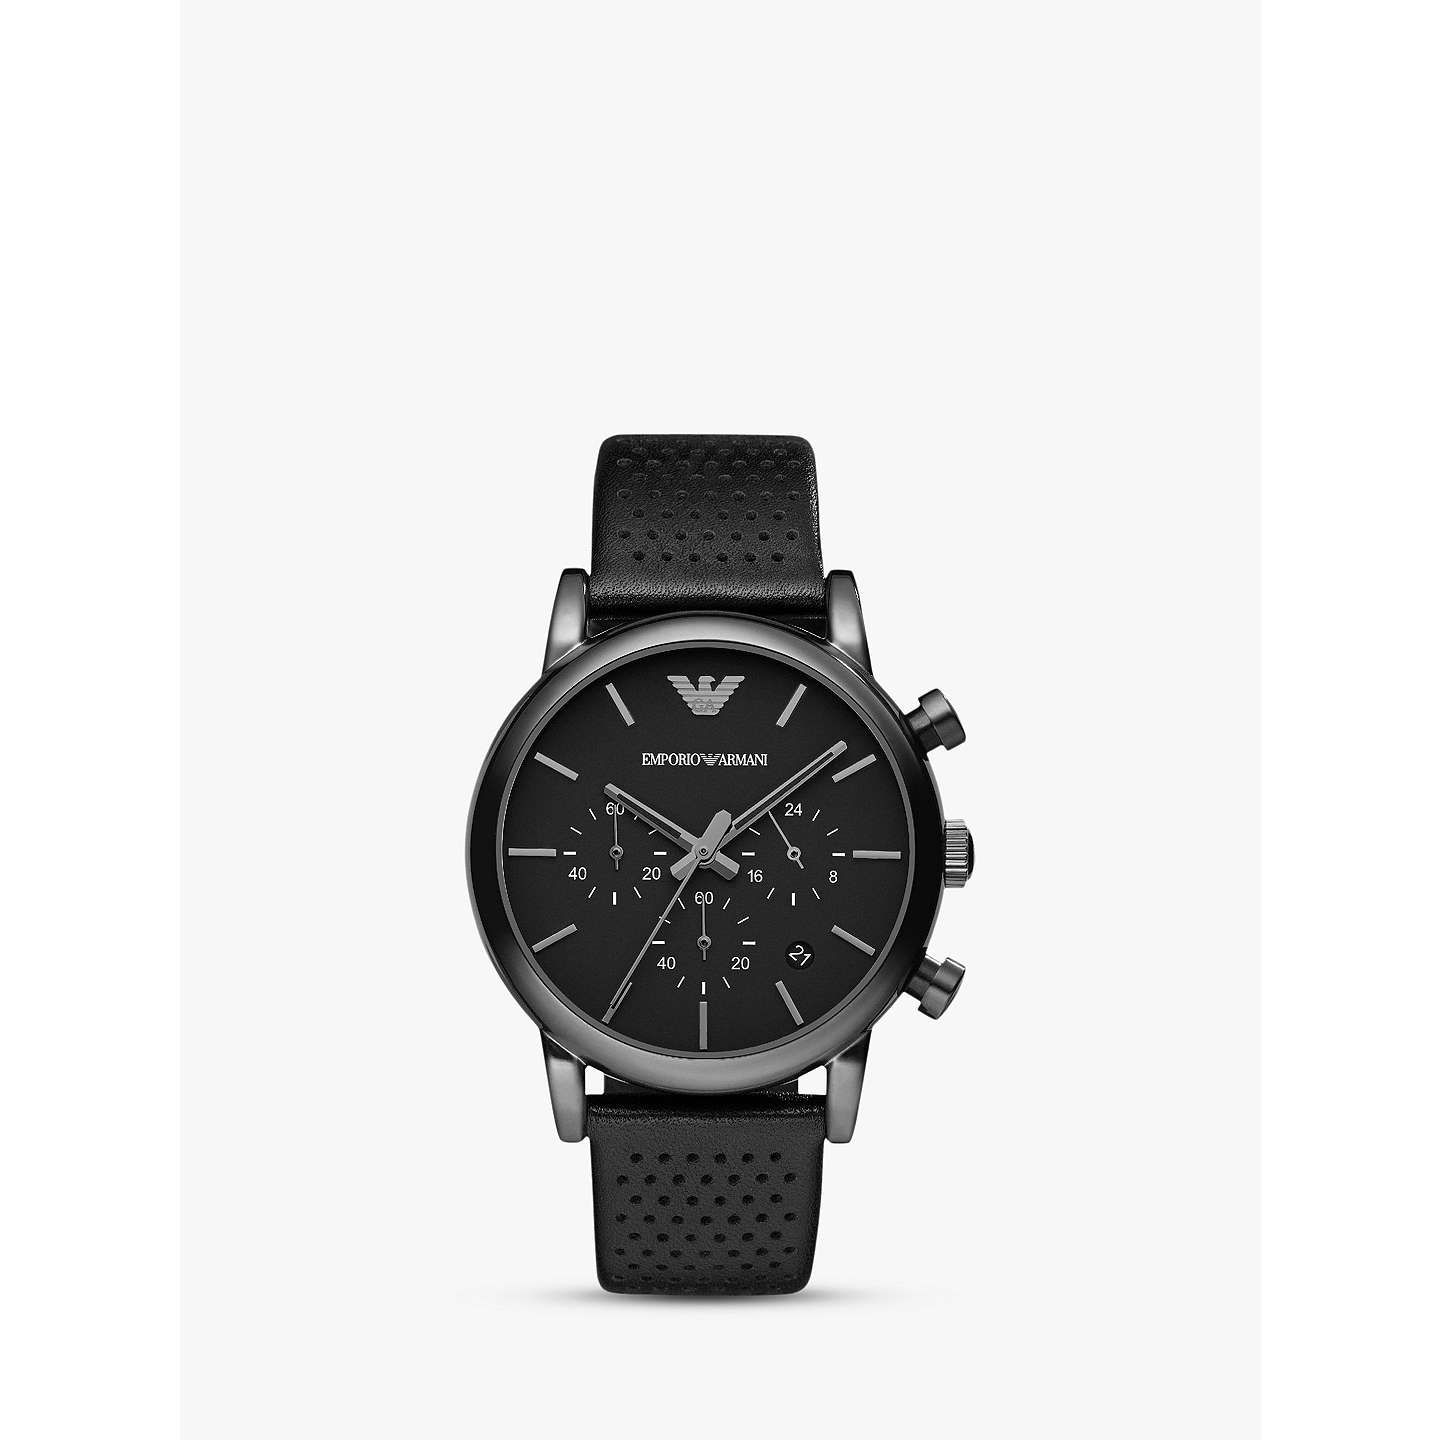 s leather small mens pdp chronograph strap at steel rsp watch main black johnlewis buyemporio watches armani online stainless emporio men